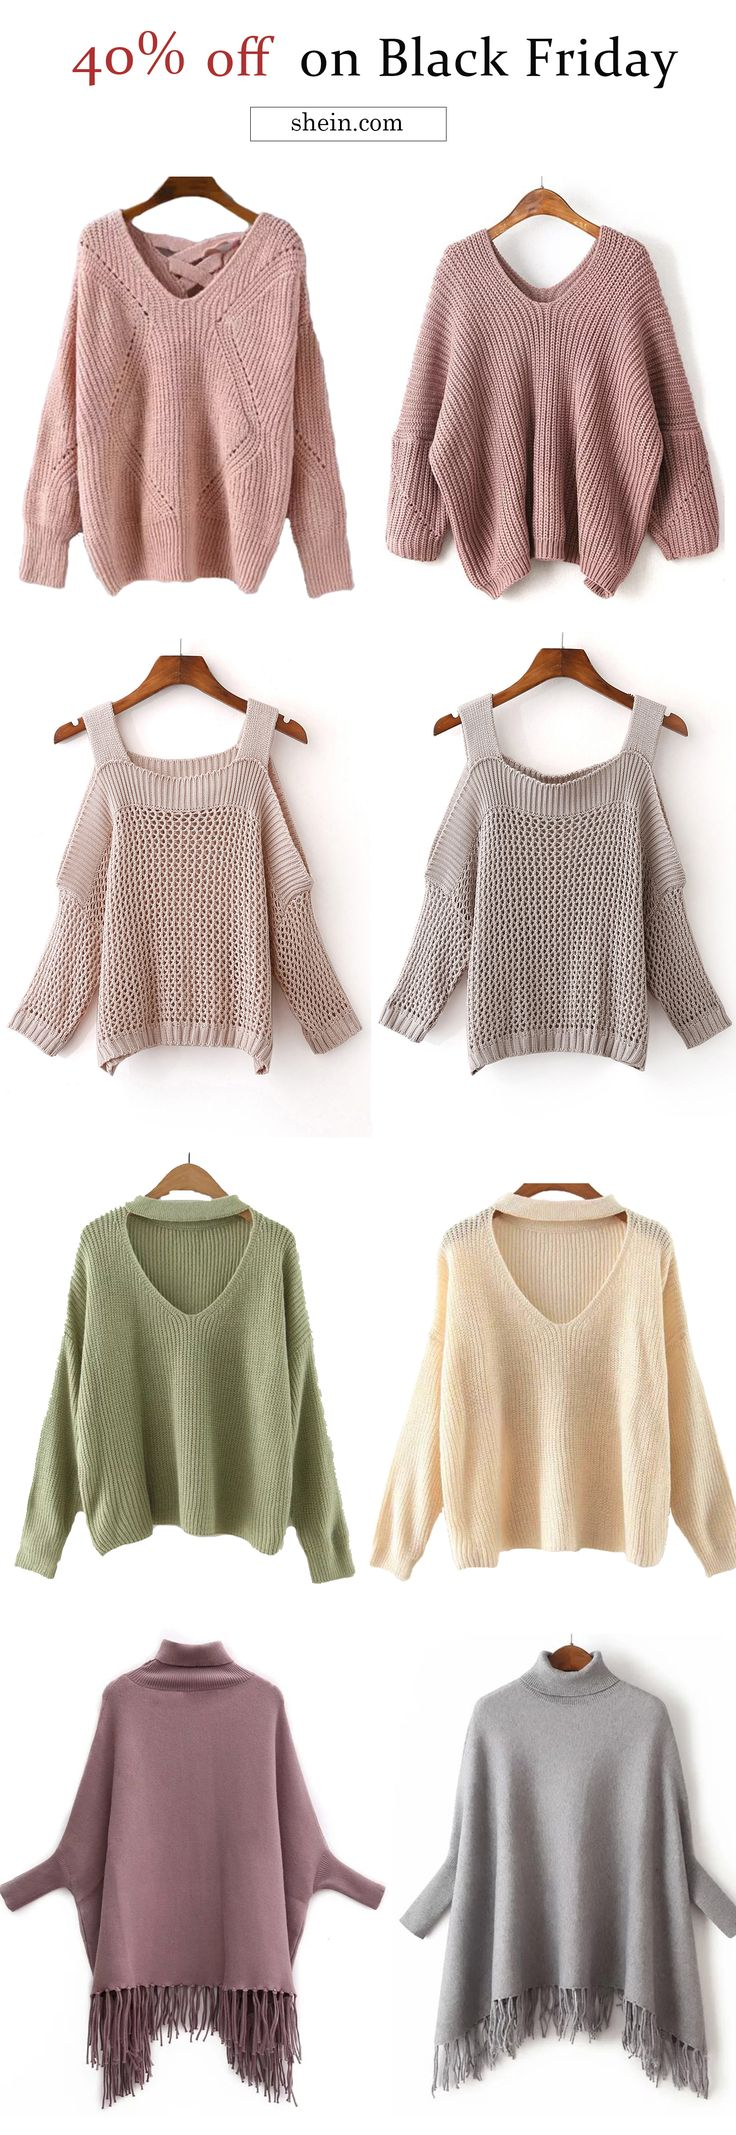 25  cute Cozy fall sweater ideas on Pinterest | Autumn cozy outfit ...